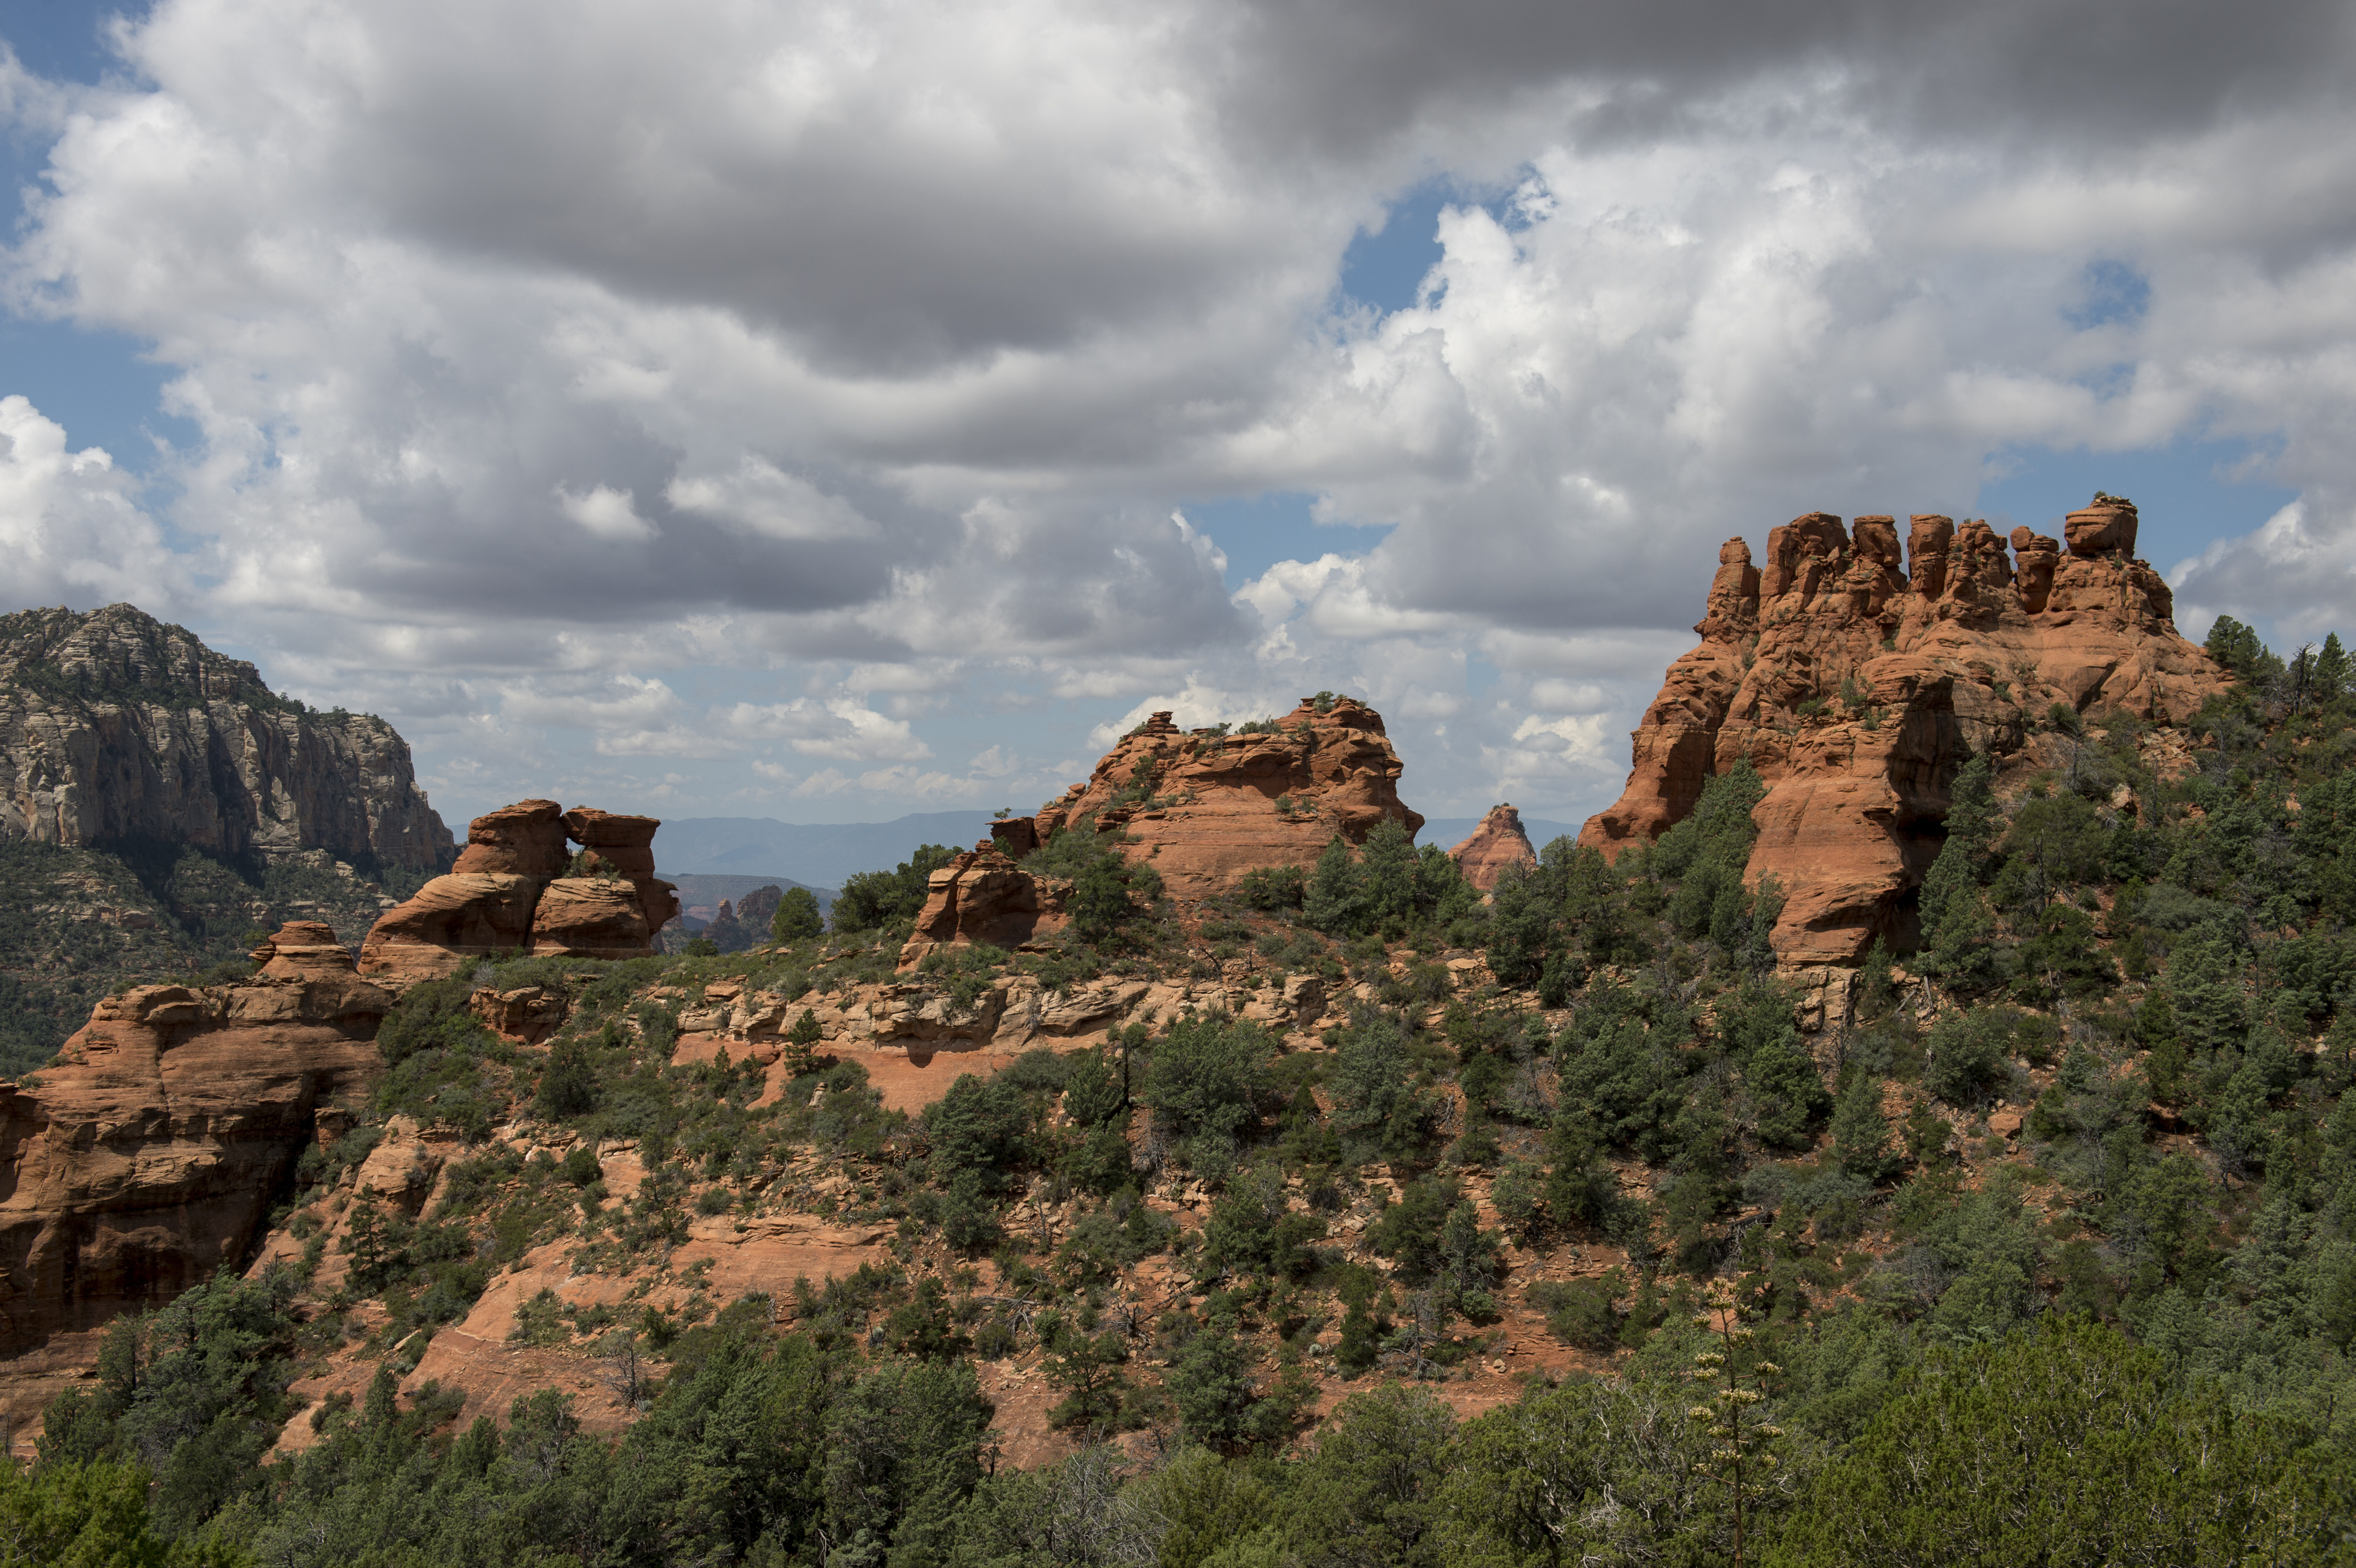 View of the red rock formations from Schnebly Hill Road near Sedona, Arizona, USA.